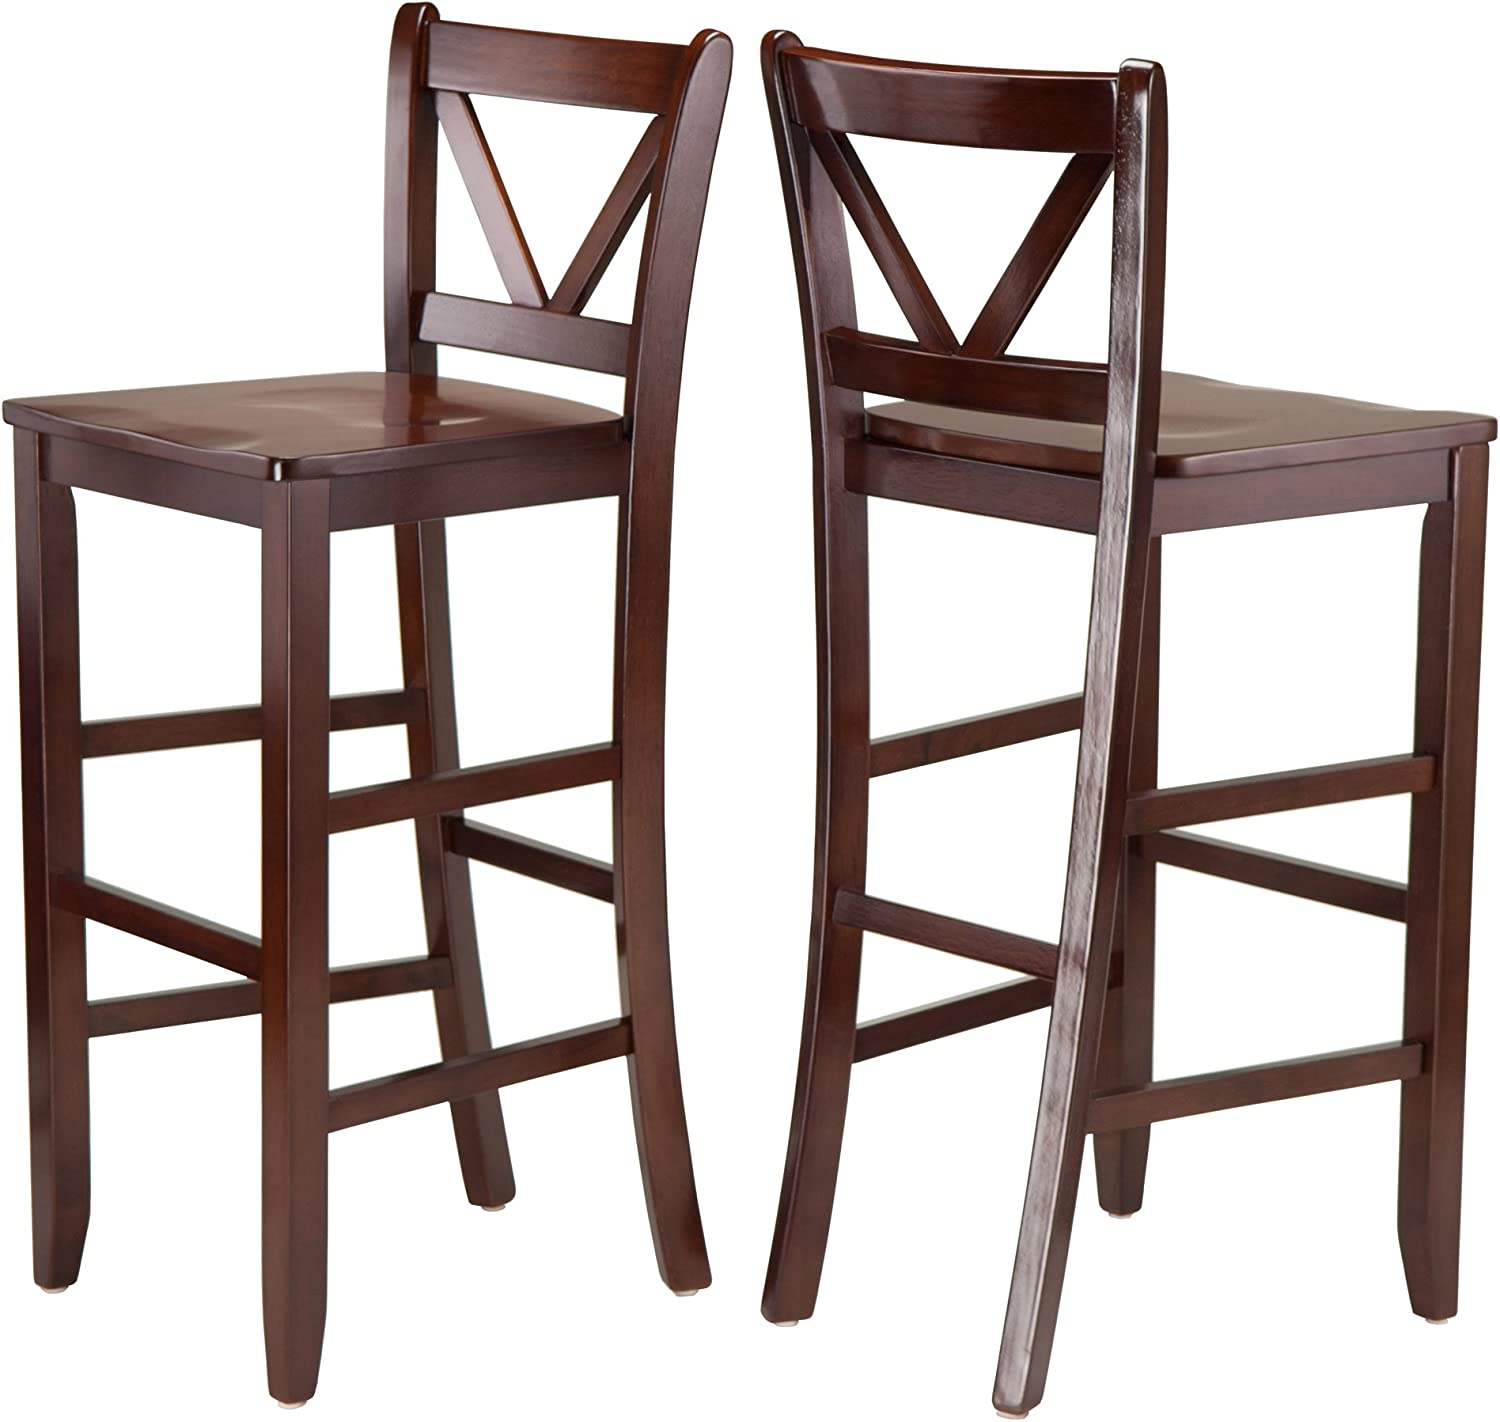 Winsome Limited price sale Victor Stools New Orleans Mall Brown 29